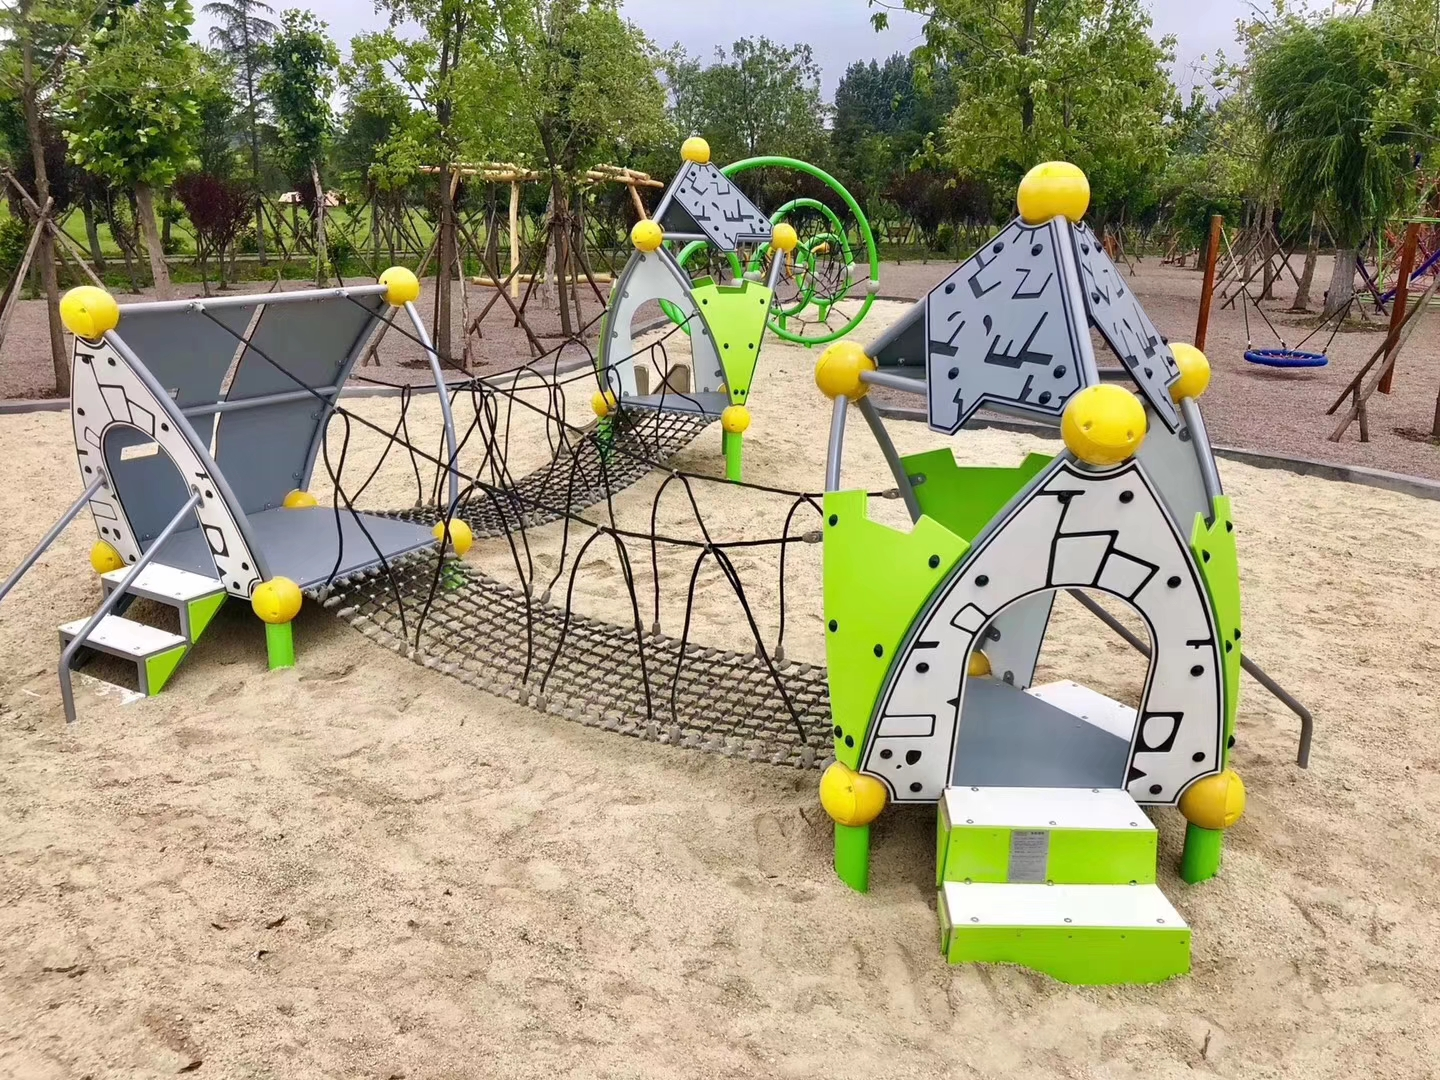 COMMERCIAL INDOOR AND OUTDOOR PLAYGROUND EQUIPMENT